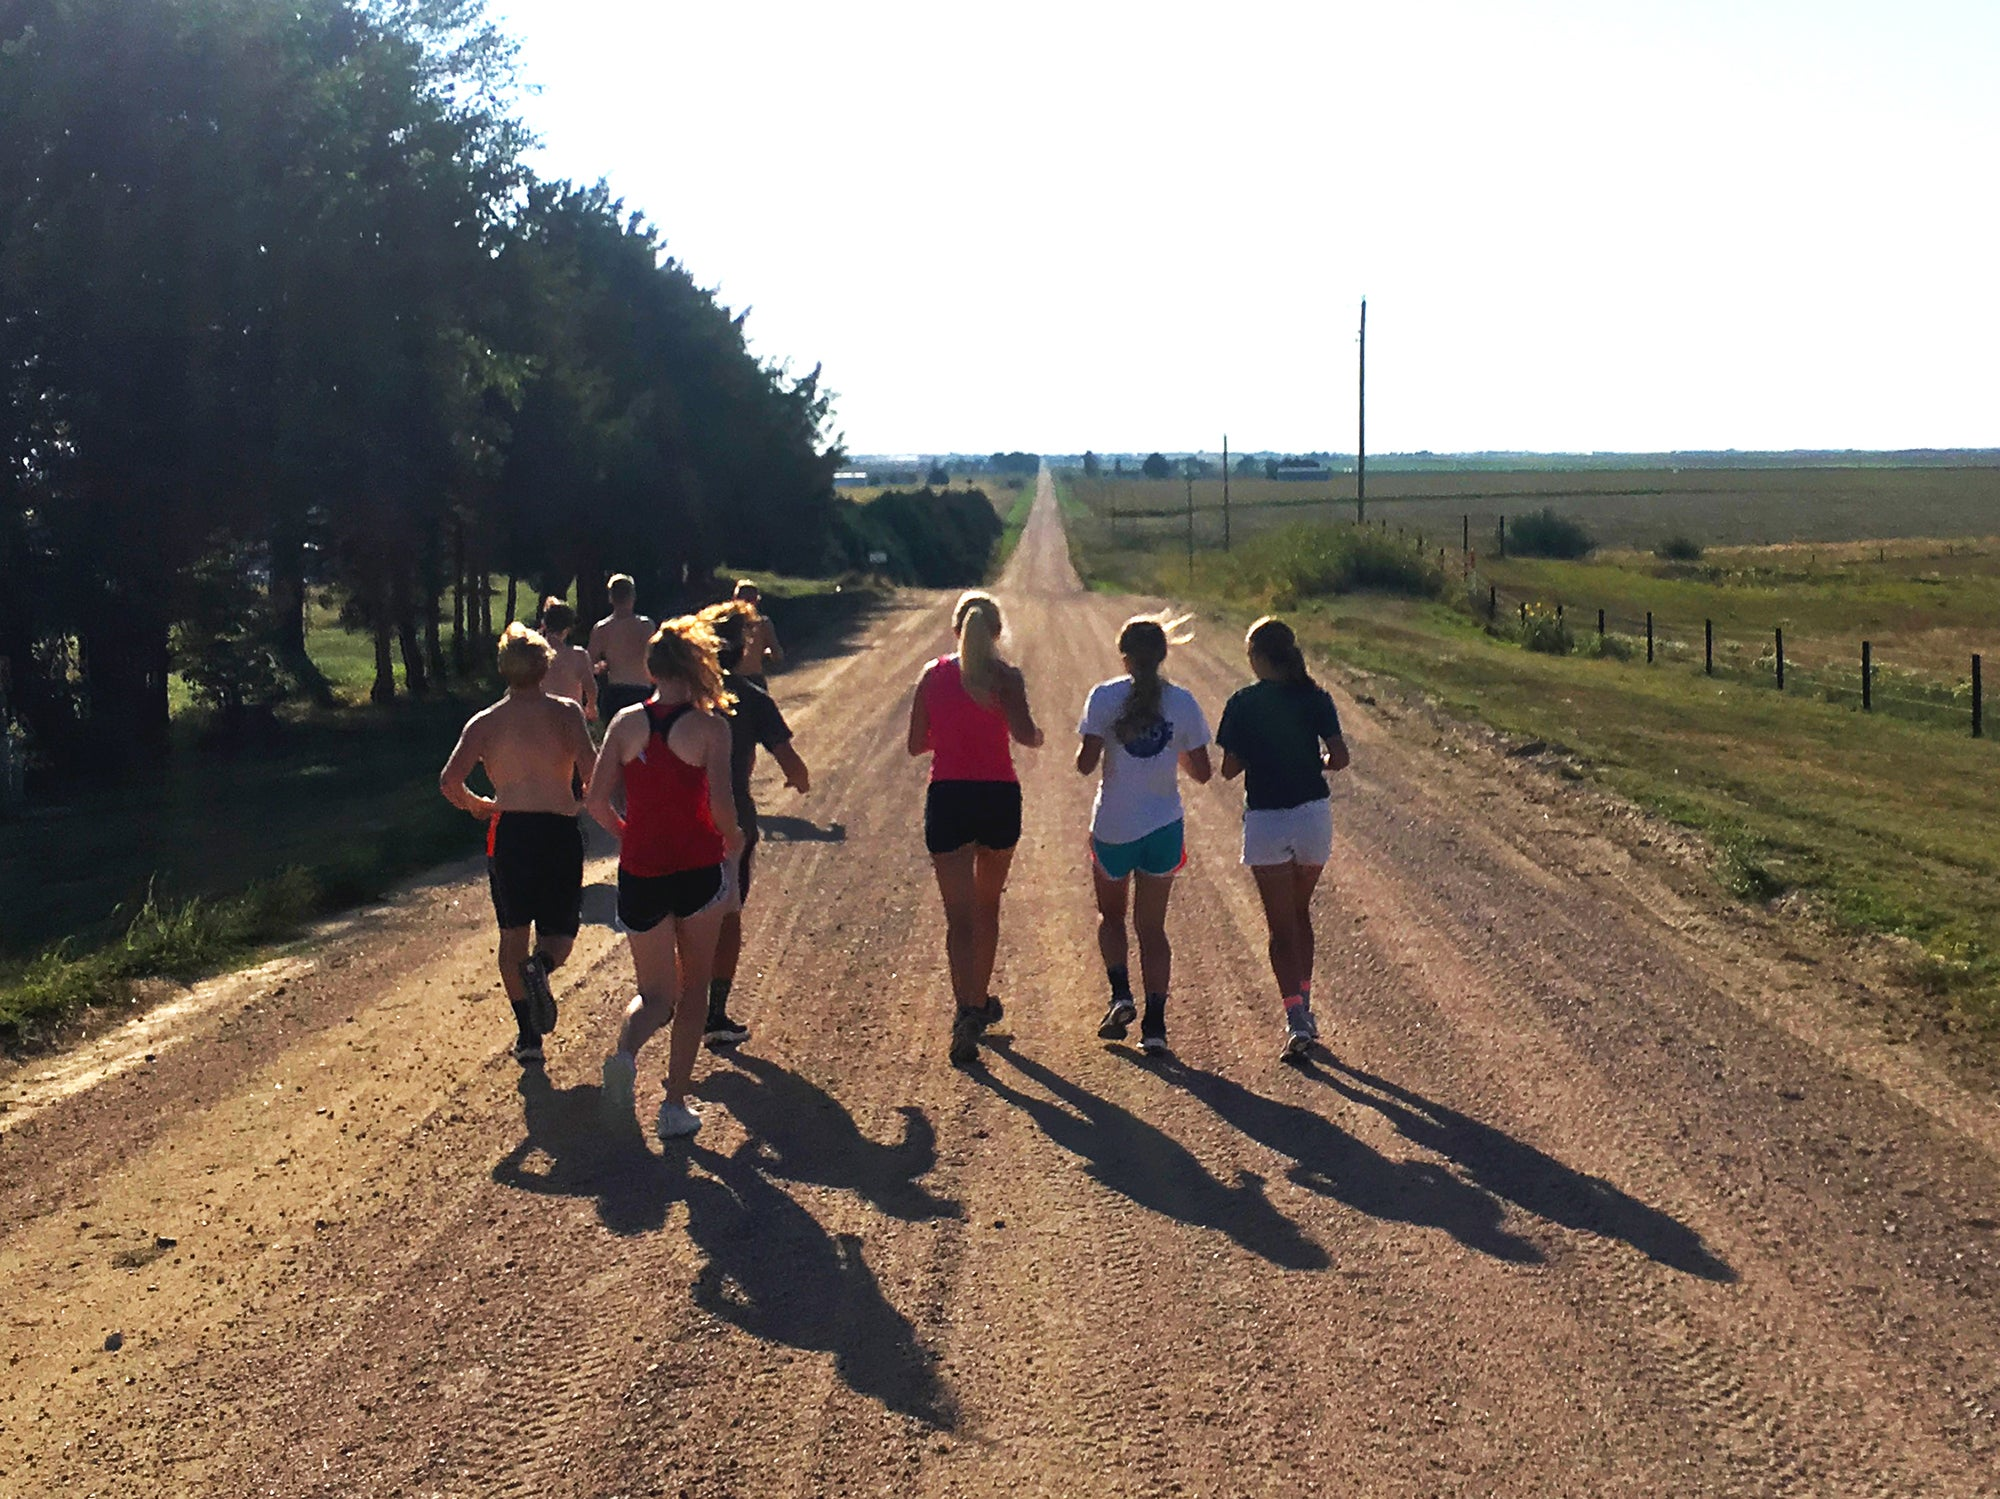 group of young runners hot day dirt road